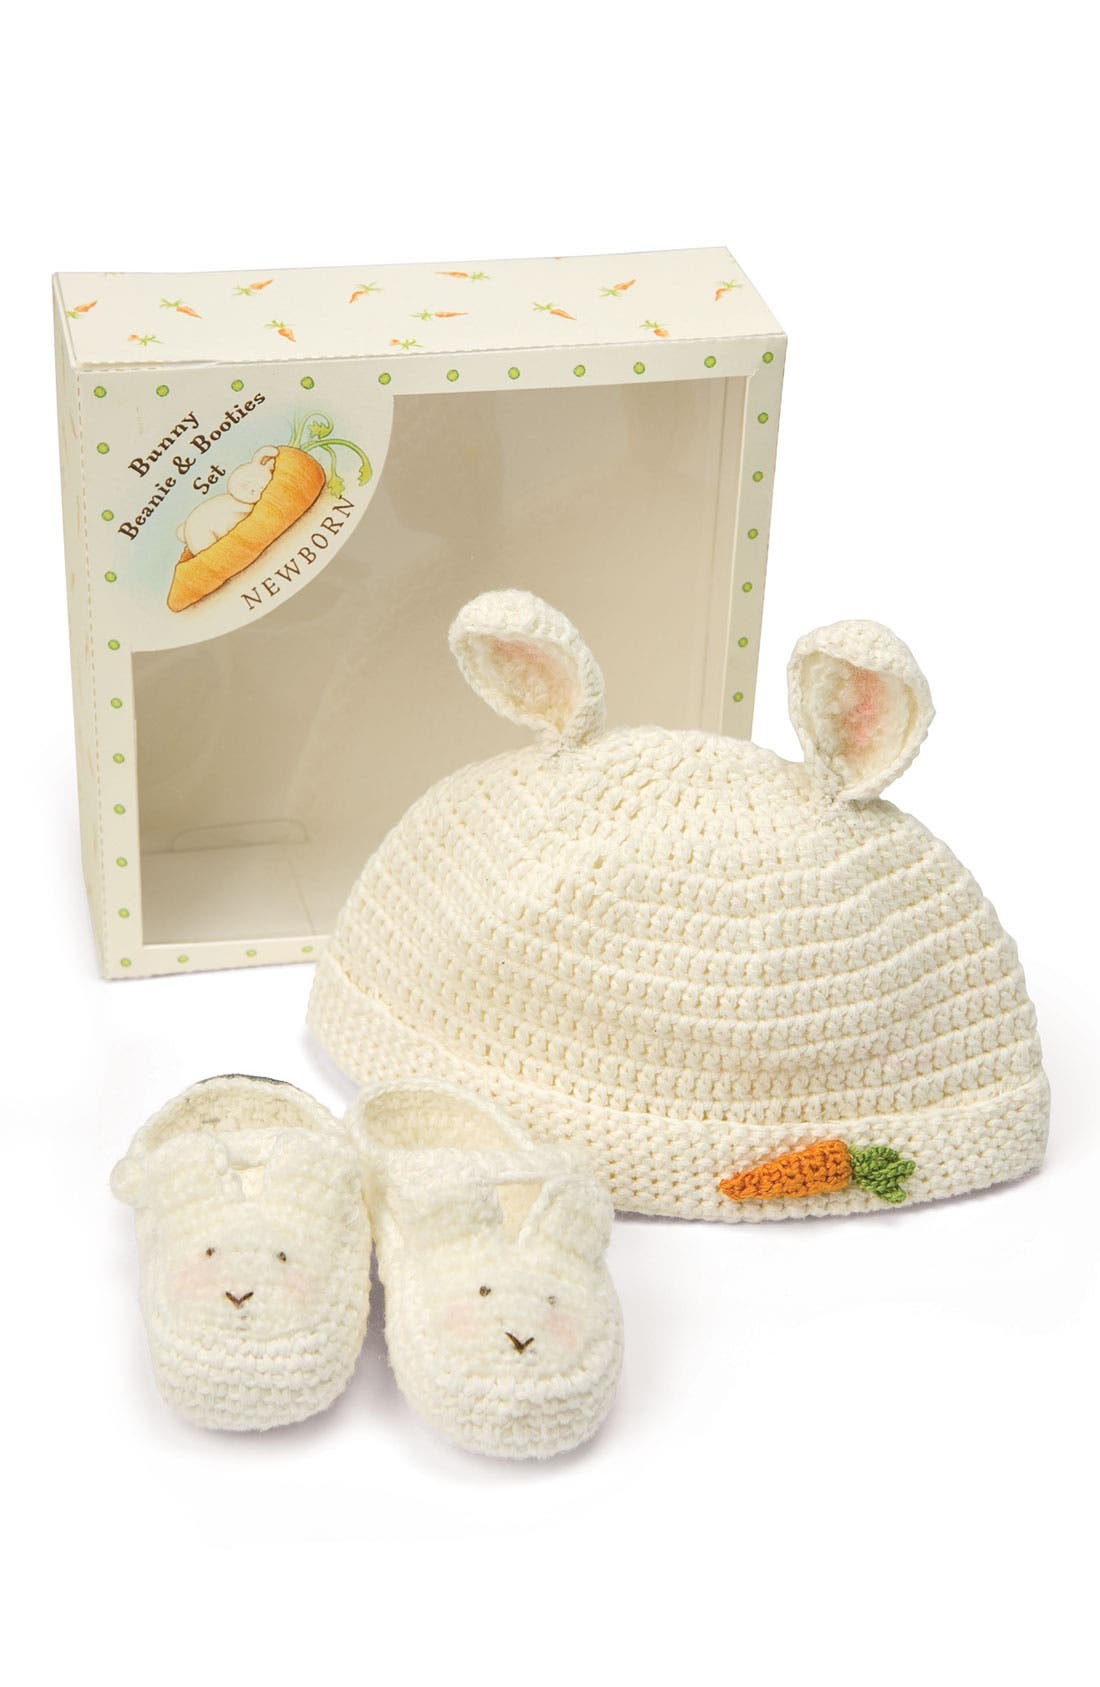 Alternate Image 1 Selected - Bunnies by the Bay 2-Piece Gift Set